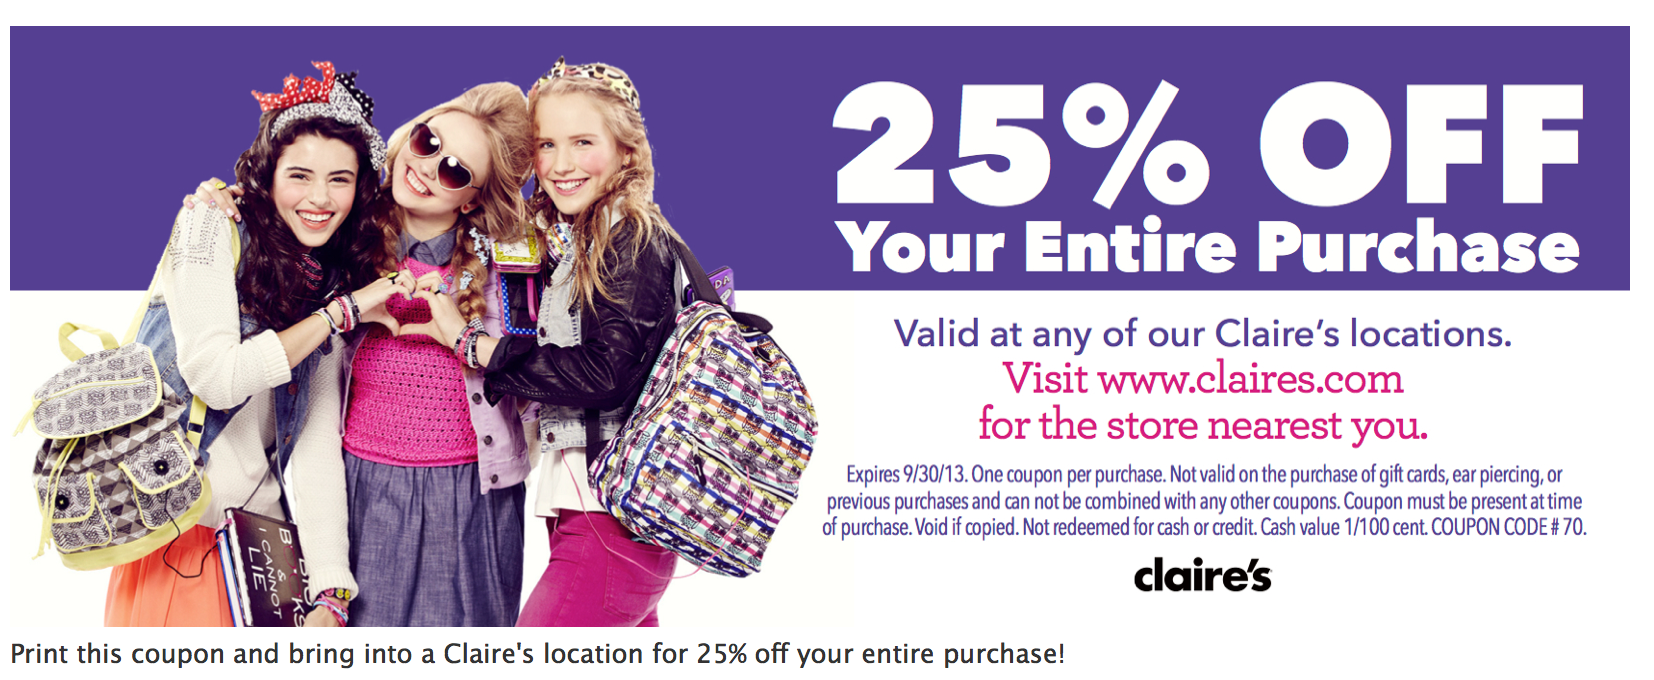 Today's top Claire's coupon: Online & In-Store! 20% Off Full Price Purchase. Get 7 Claire's promo codes and printable coupons on RetailMeNot.